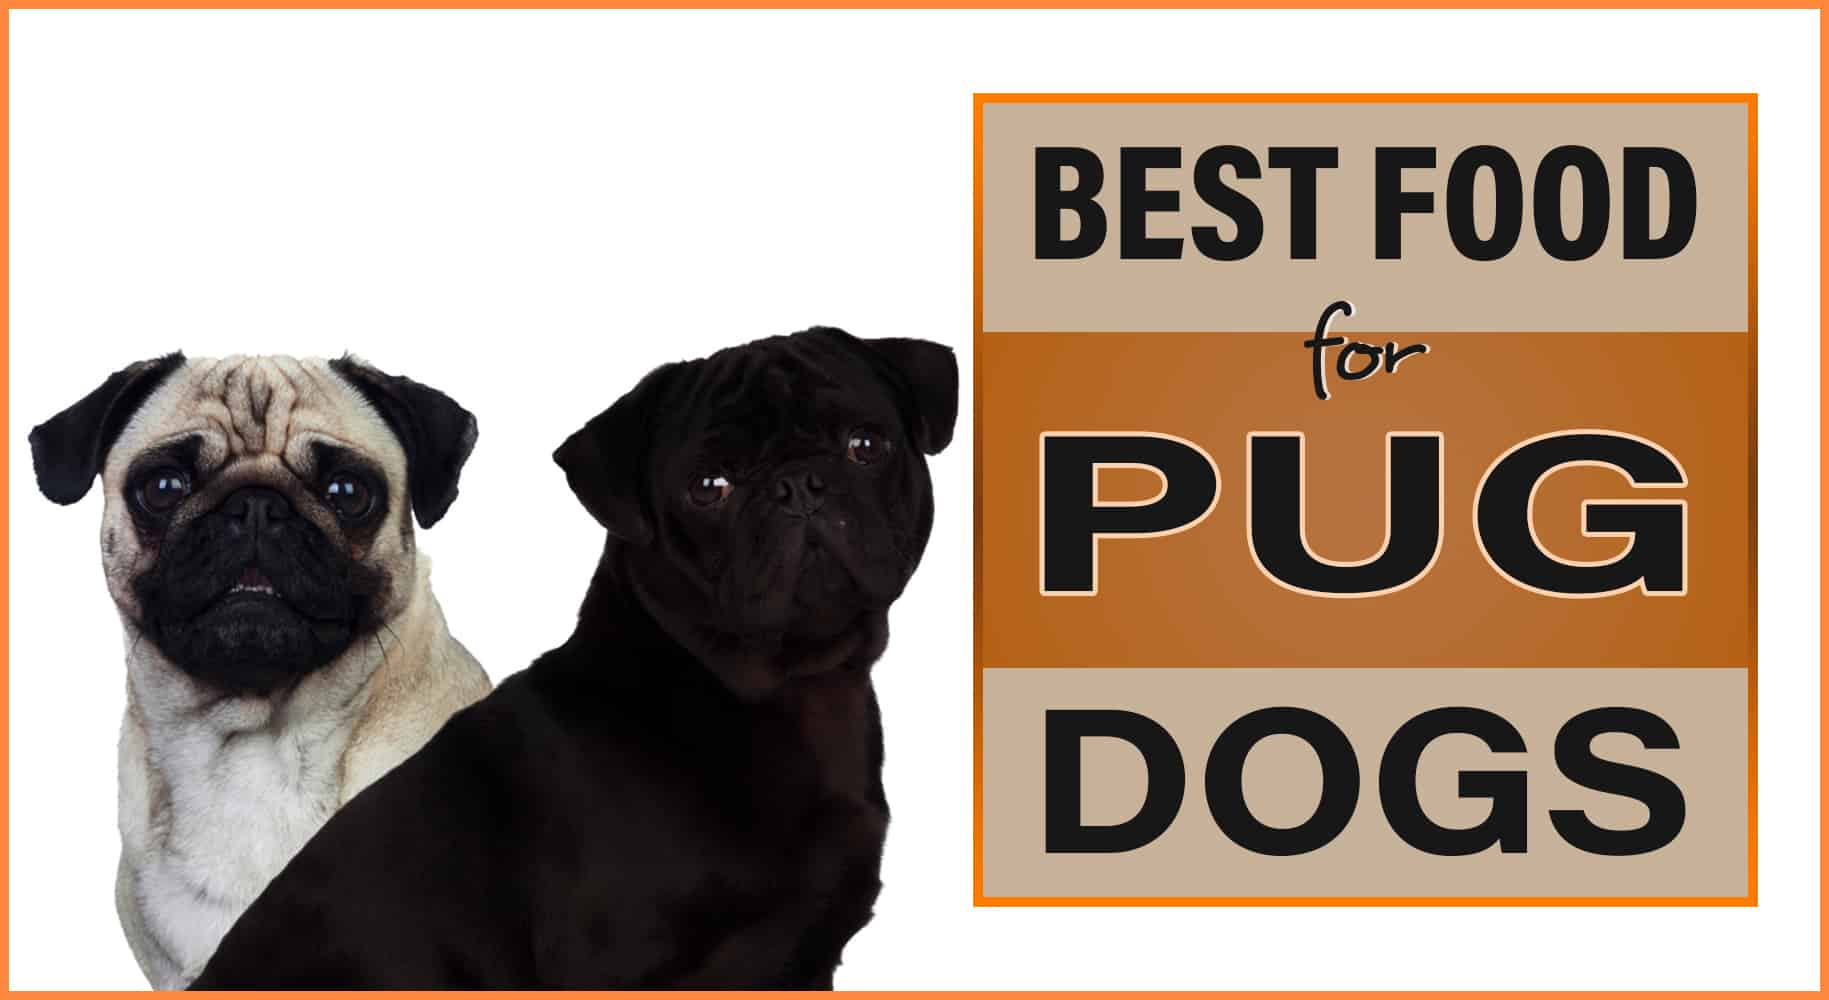 Best Food For Pug Dogs